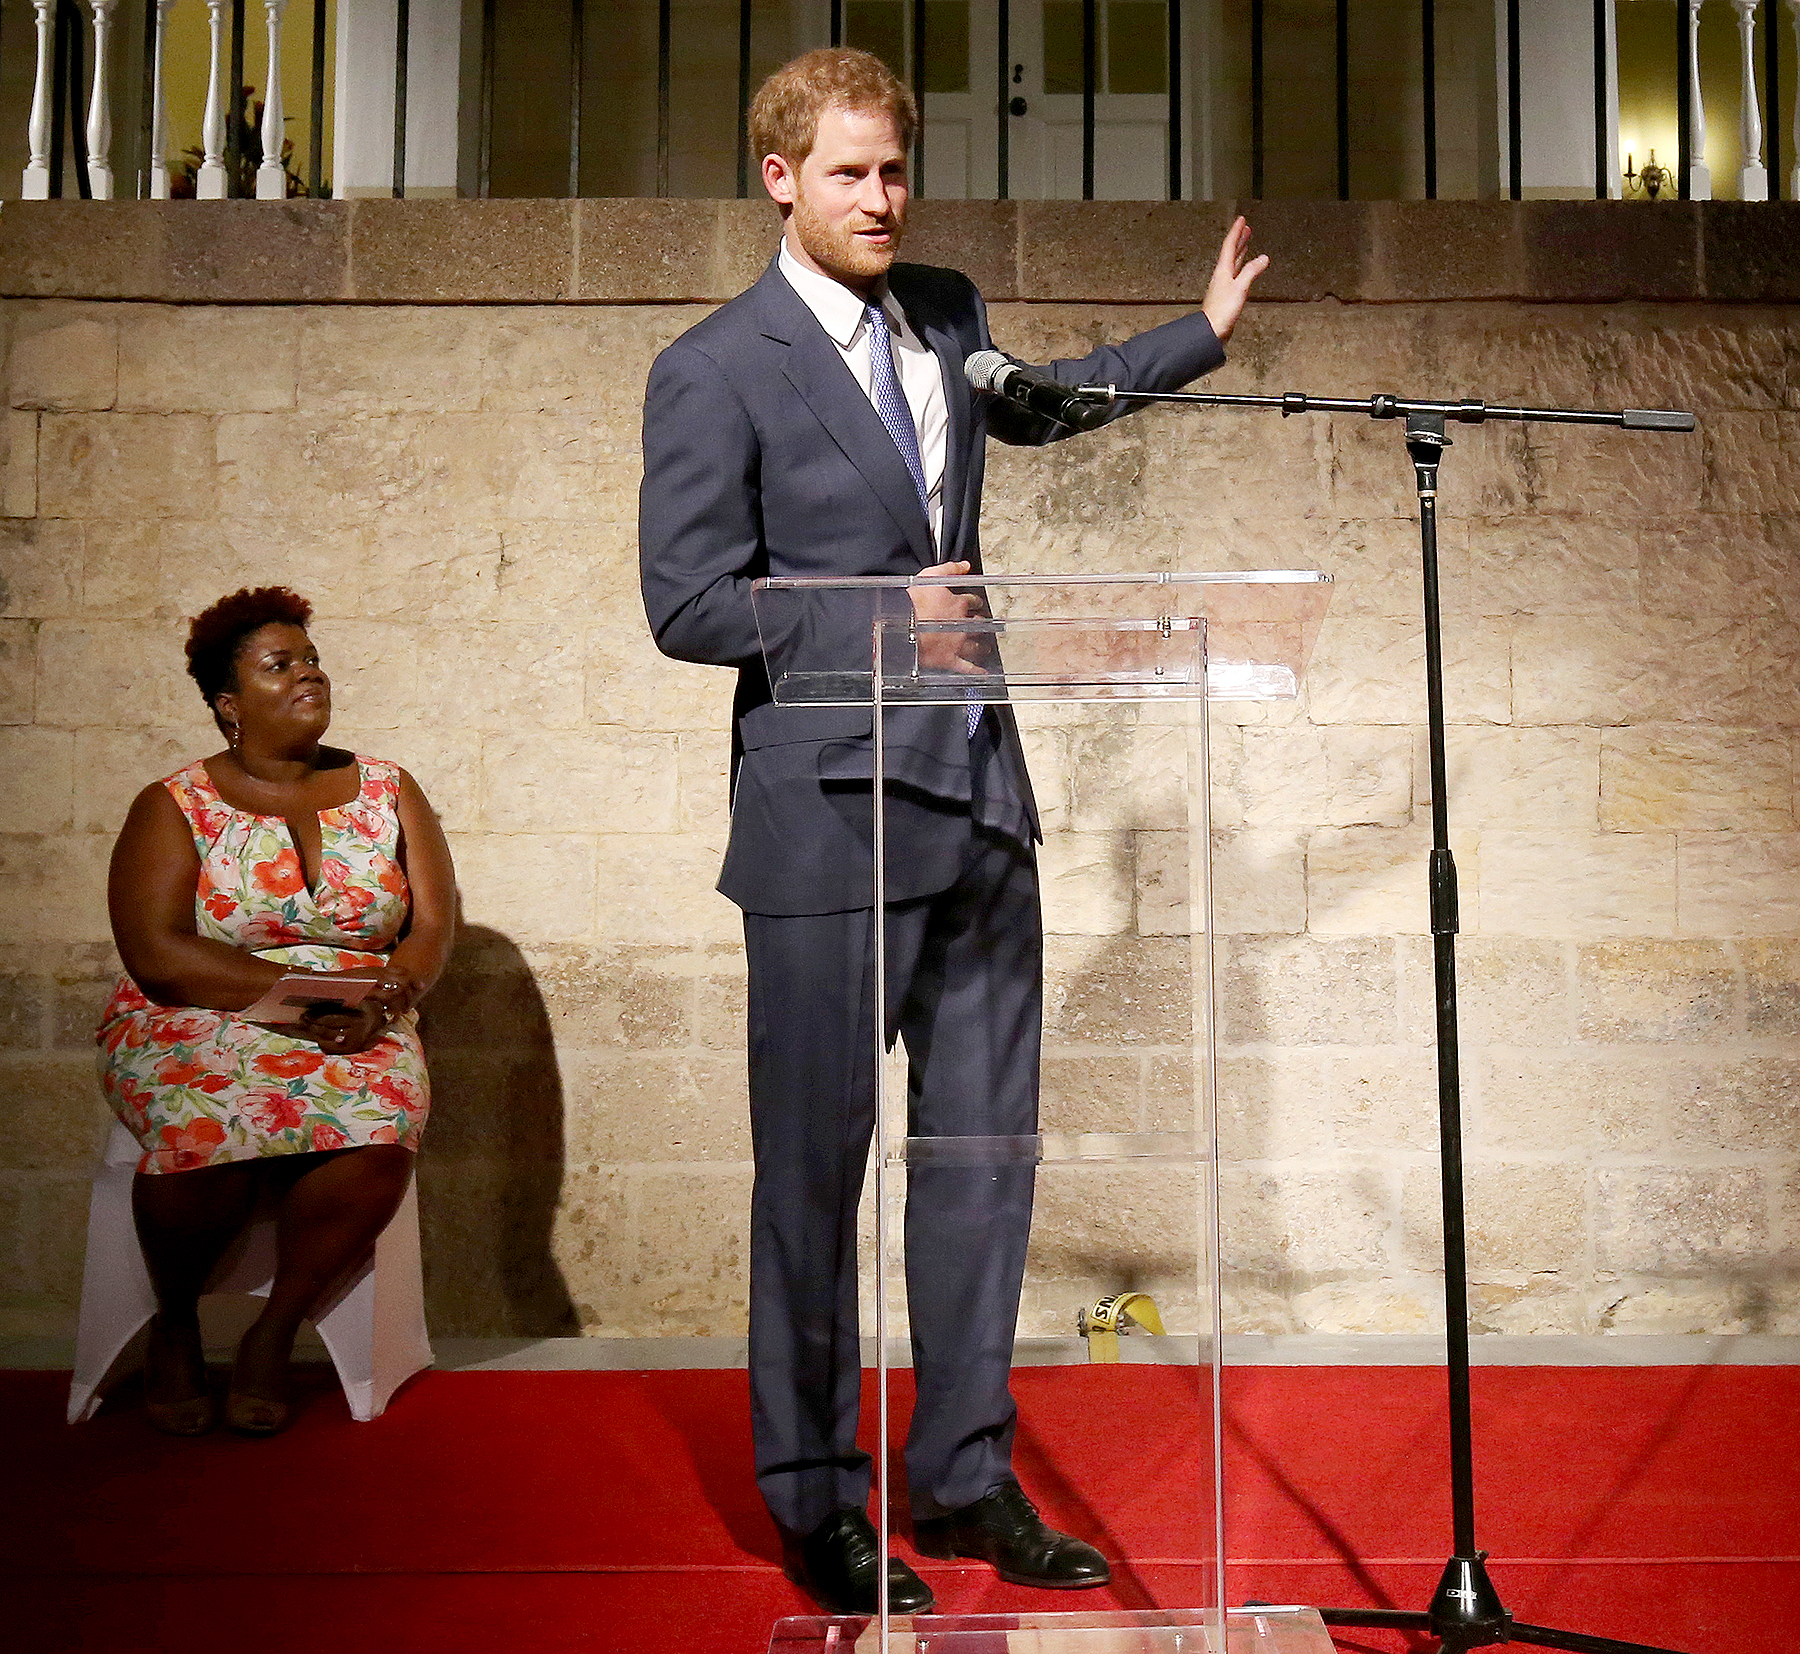 Prince Harry delivers a speech during a welcome reception hosted by the Governor General, Sir Rodney Williams, at the newly renovated Clarence House on the first day of an official visit, on Nov. 20, 2016, in Antigua.